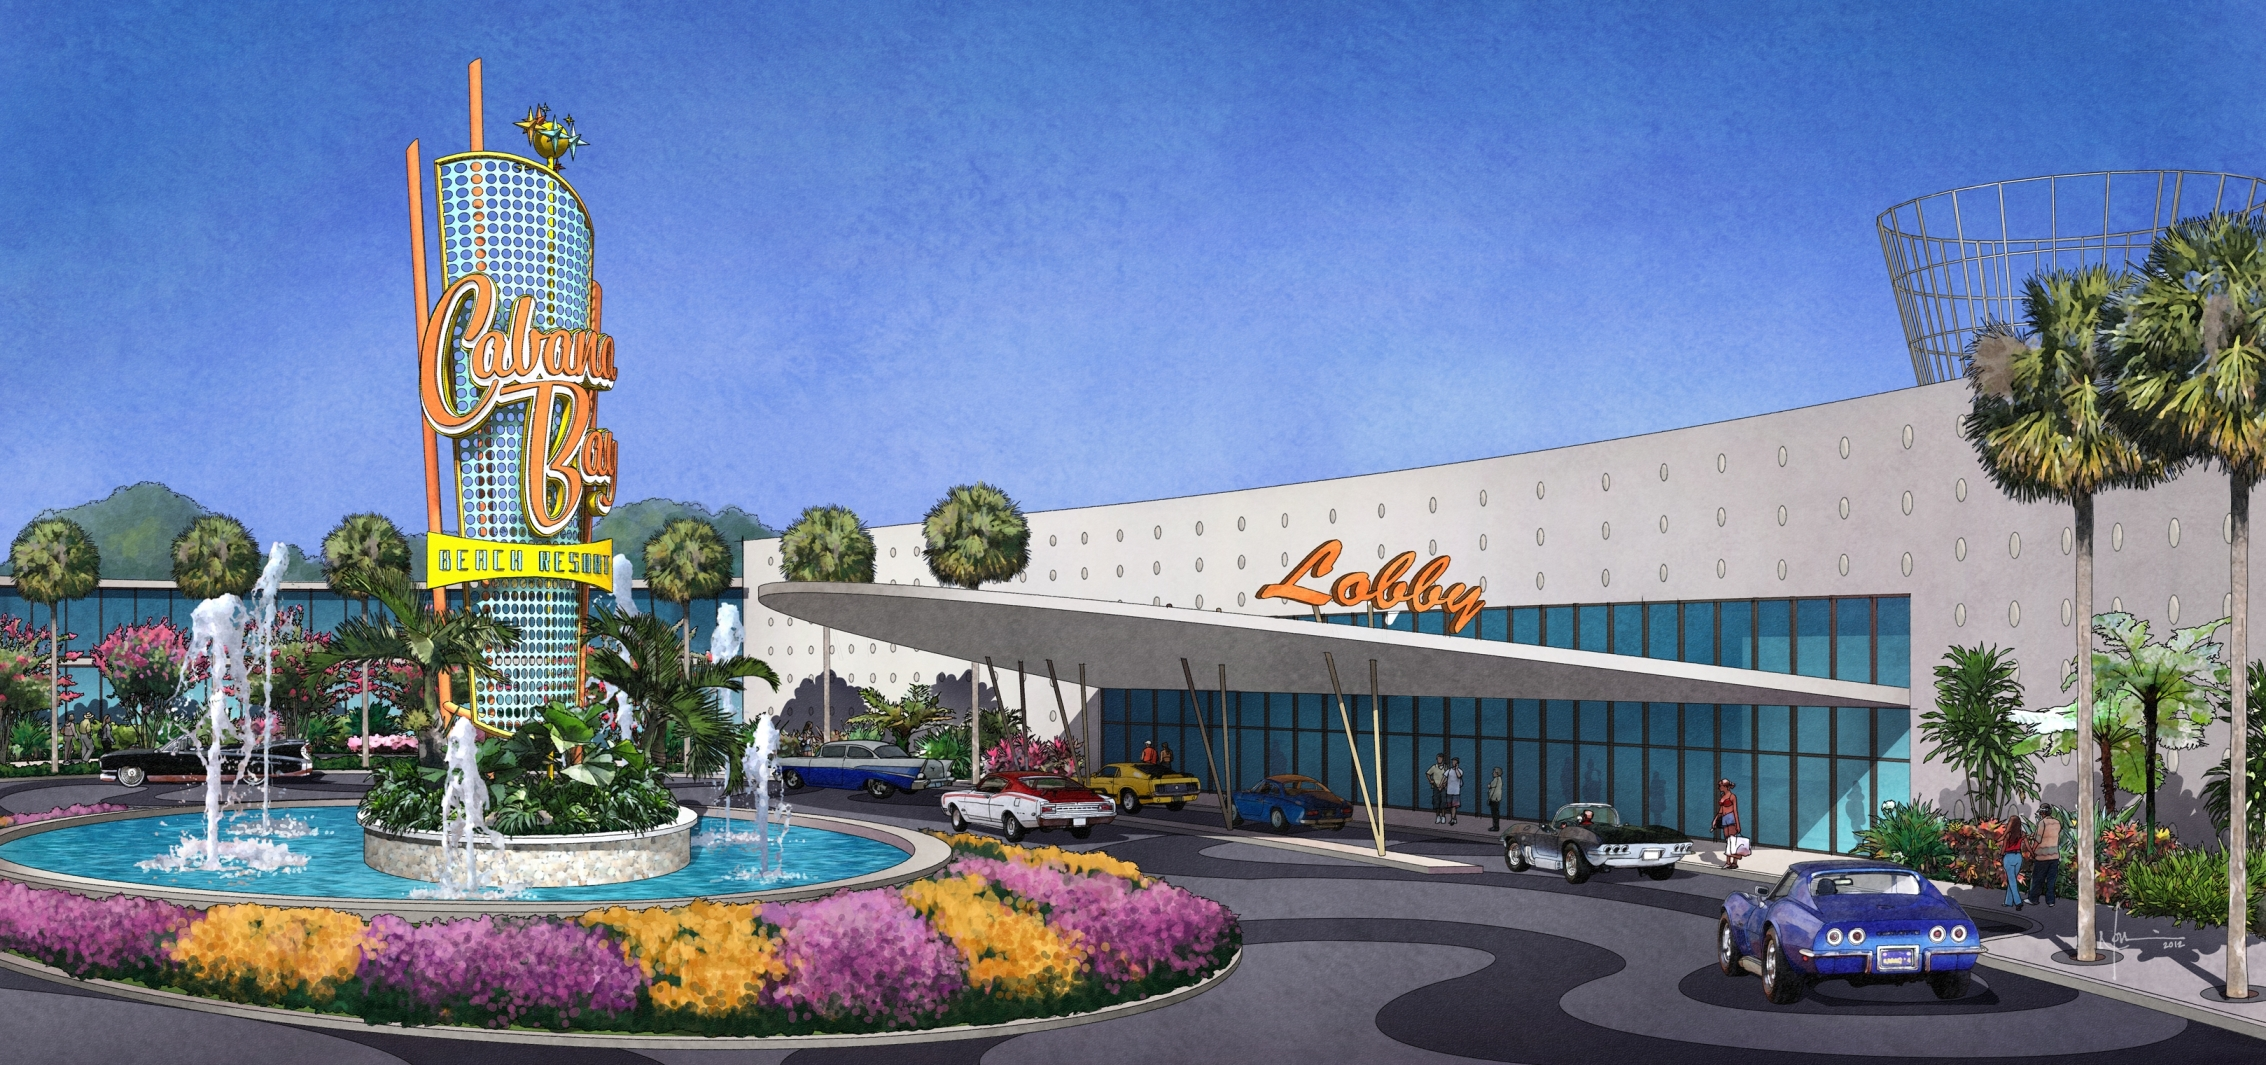 New 50's-Themed Family Suite and Value Hotel Announced at Universal Orlando